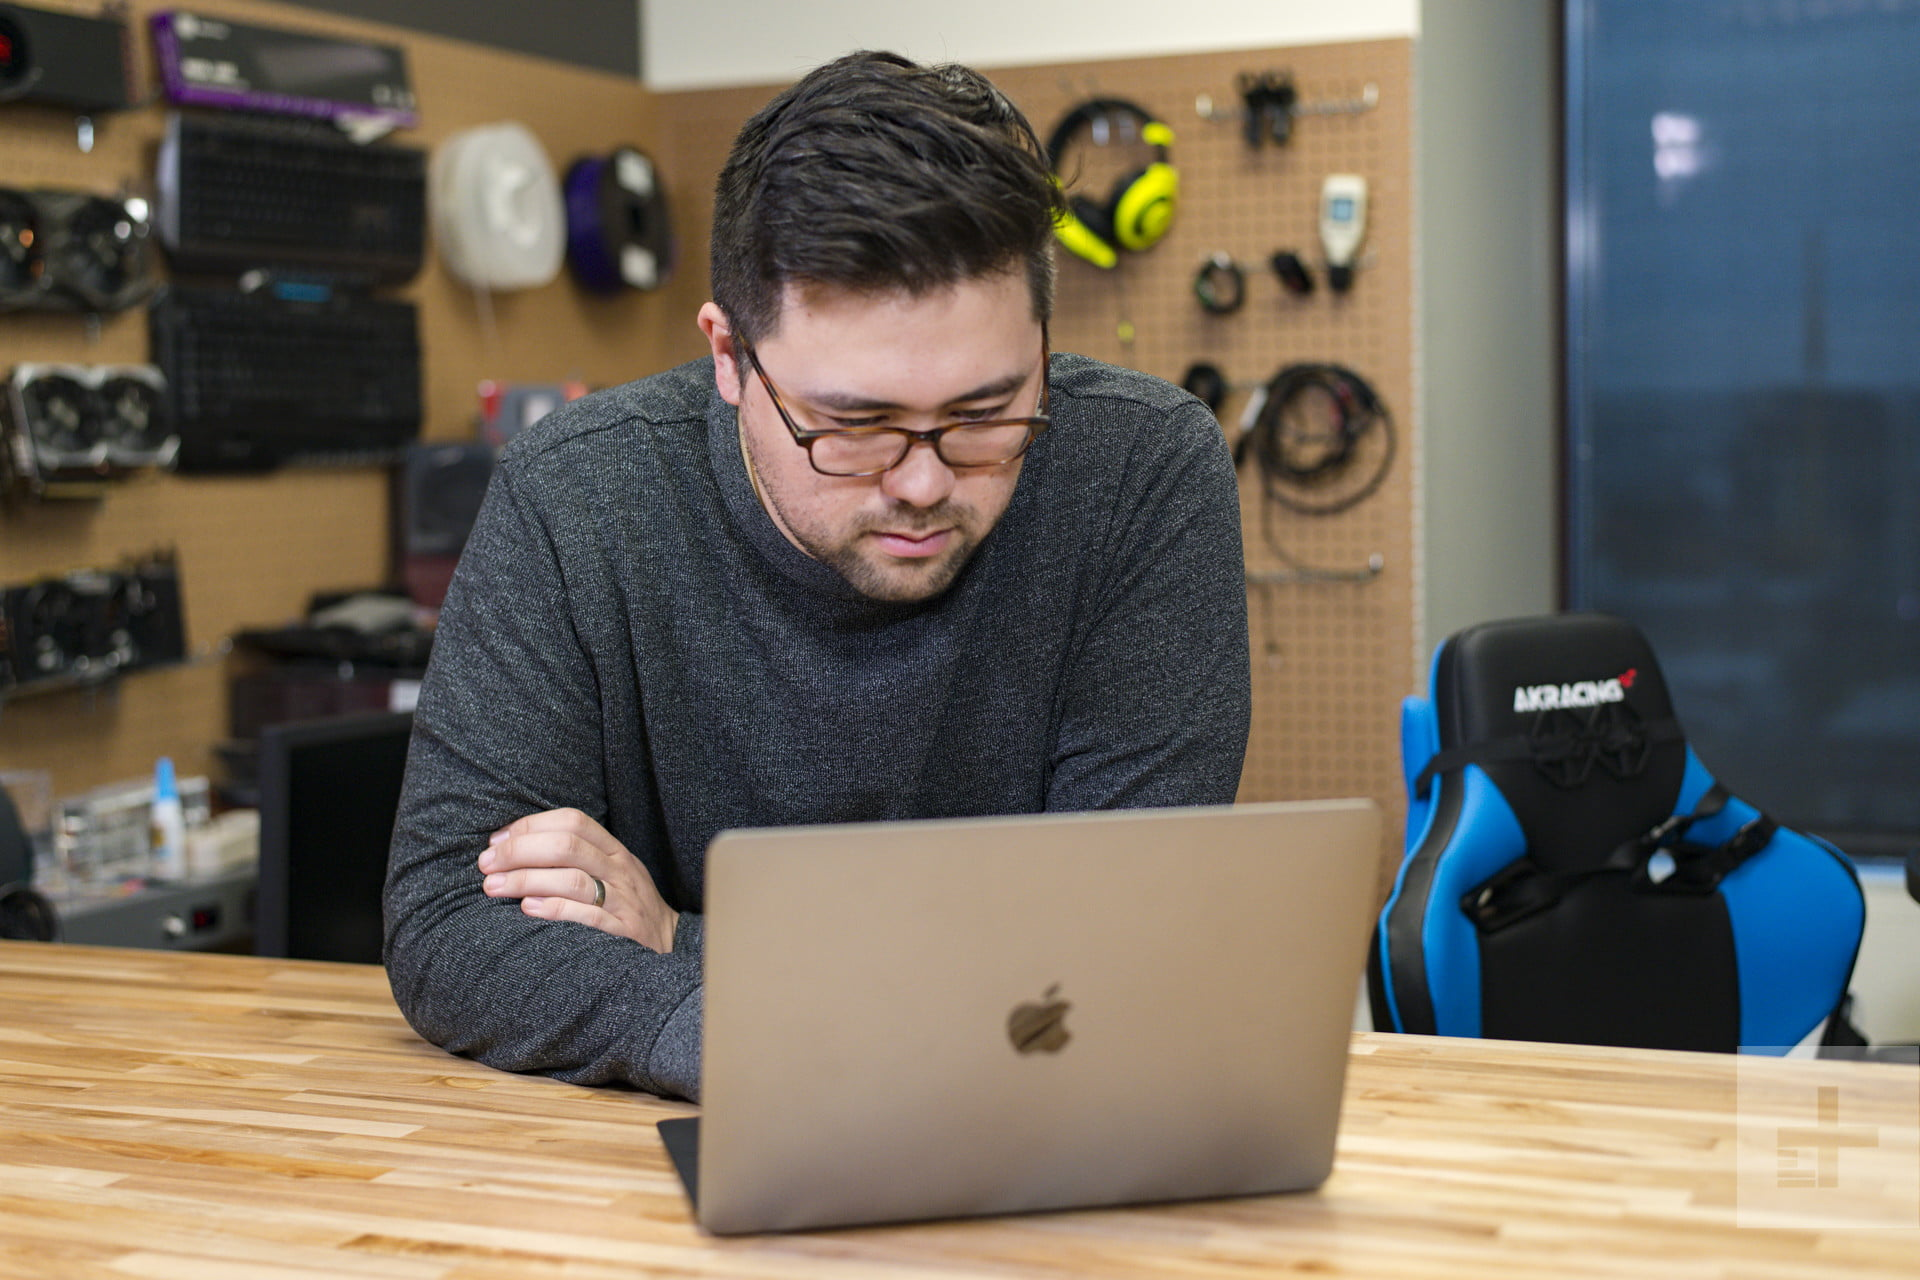 MacBook won't boot up? Here's how to fix the problem